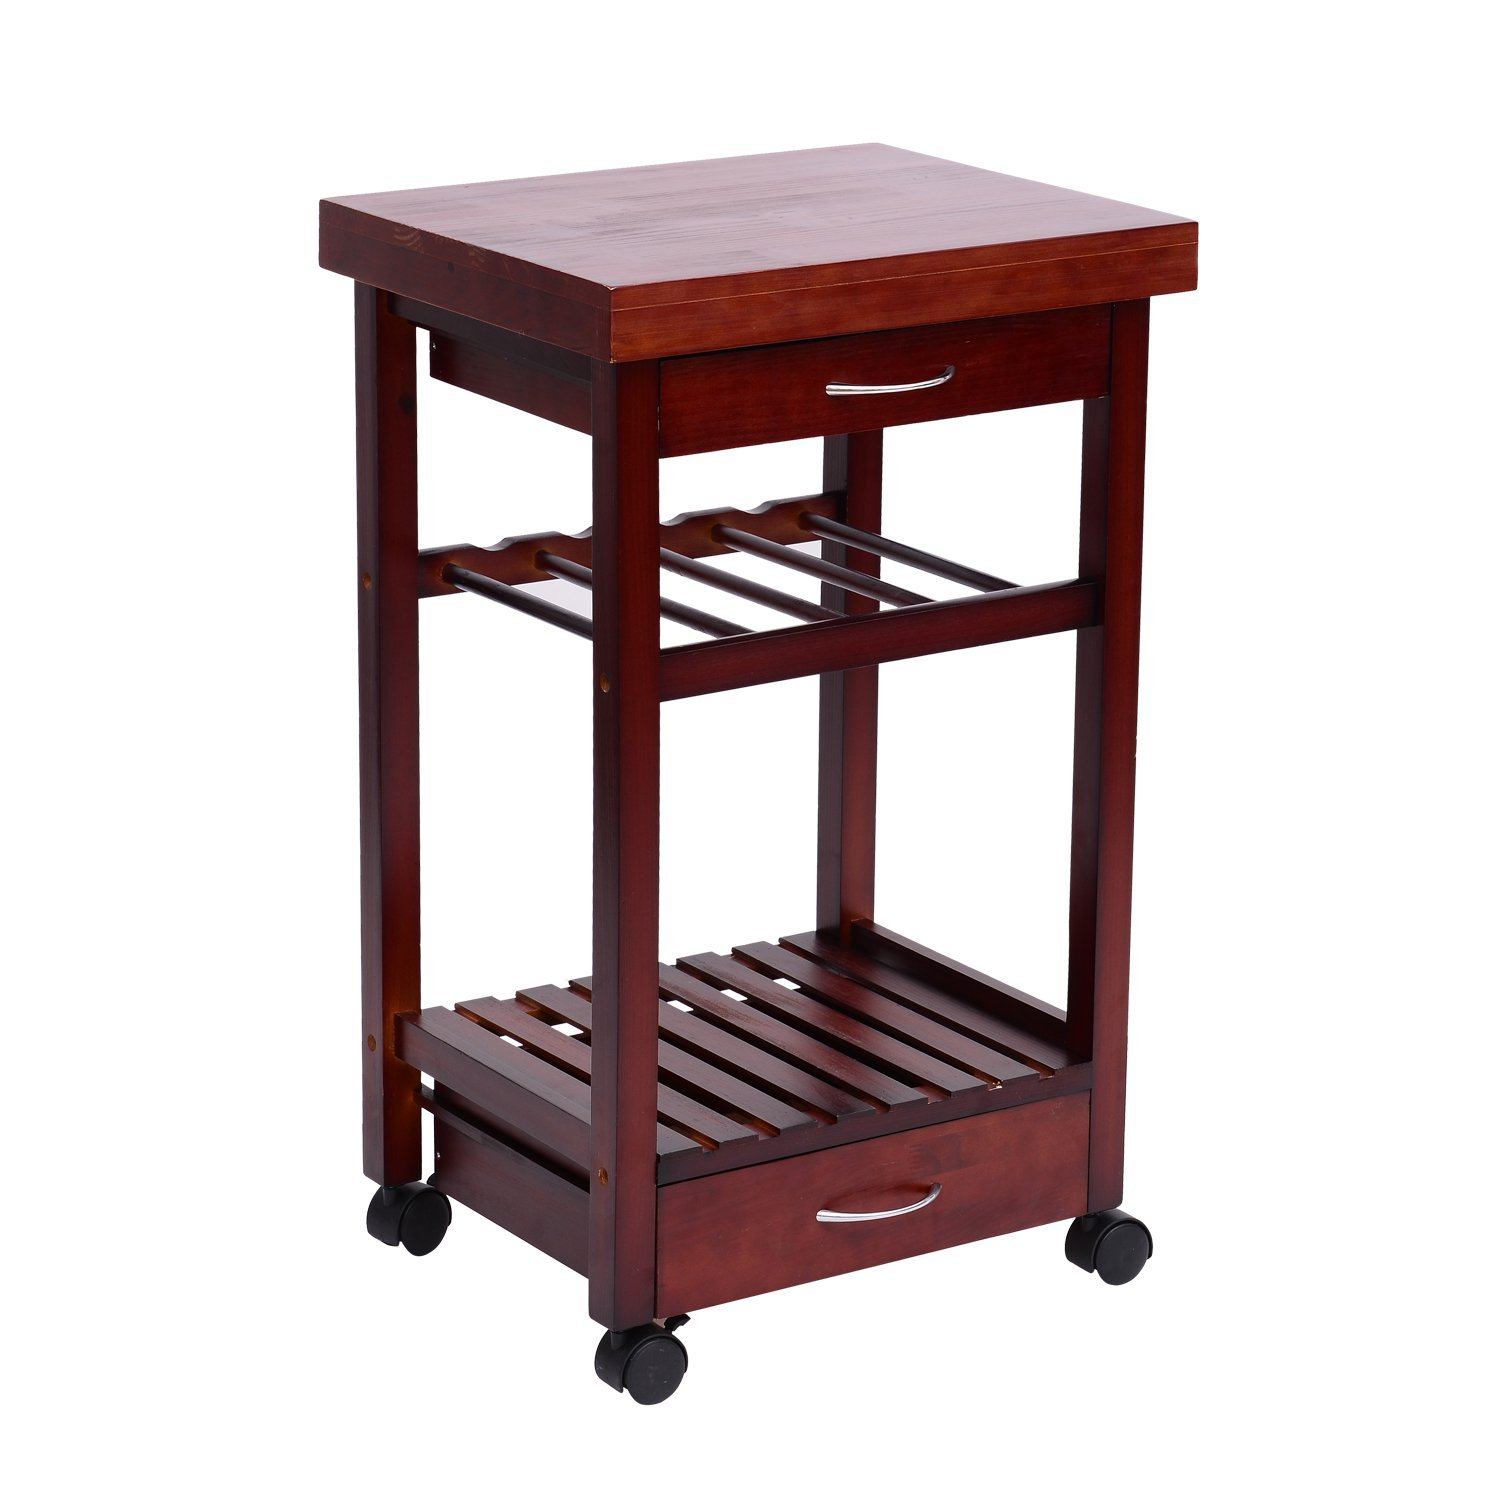 Festnight Kitchen Trolley Dining Storage Cart with Drawers and Wine Rack,Vintage Style by Festnight (Image #2)